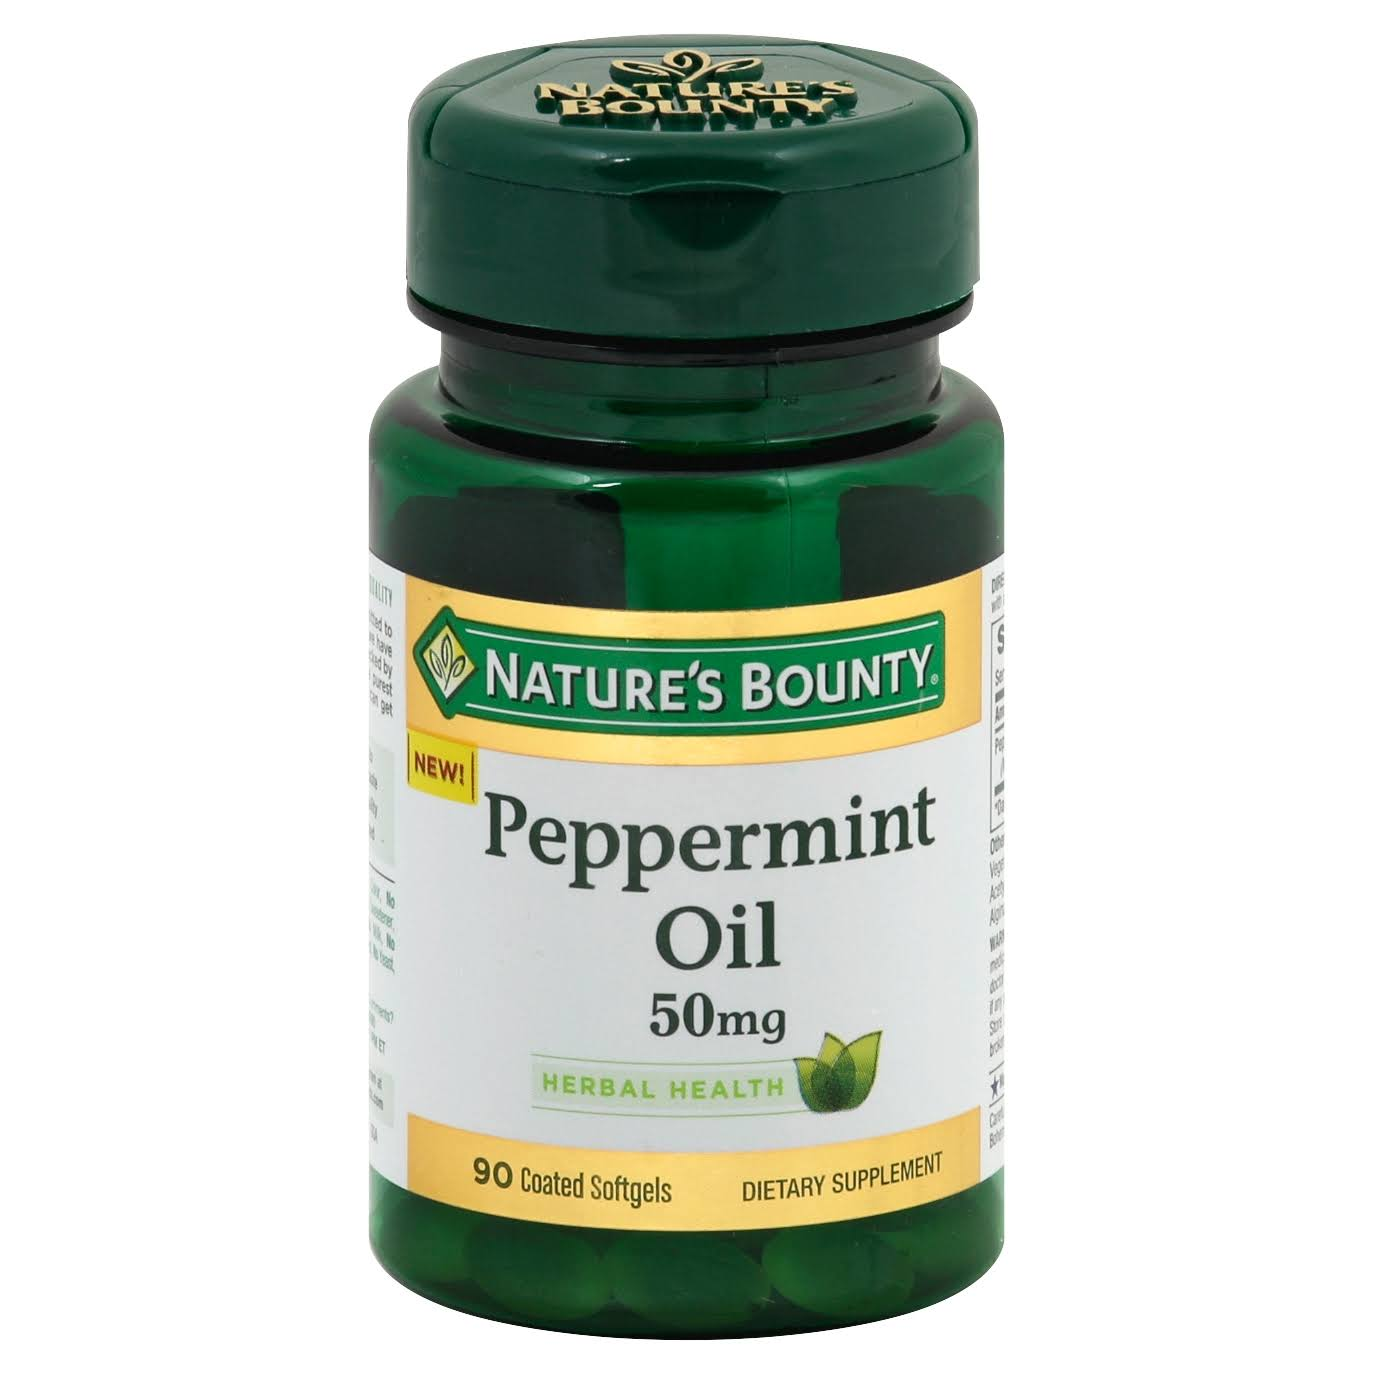 Natures Bounty Peppermint Oil, 50 mg, Coated Softgels - 90 softgels